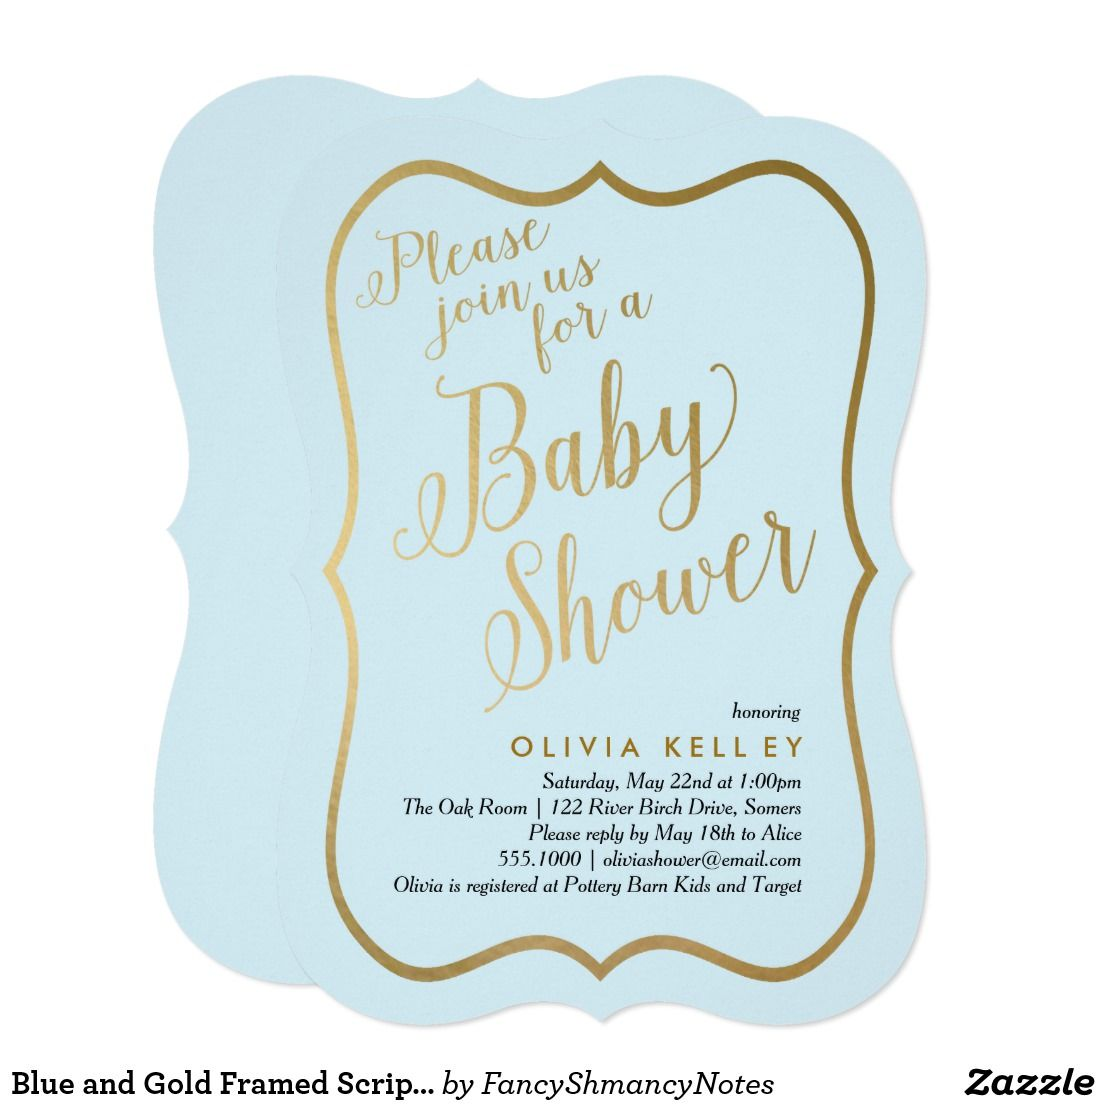 Blue and gold framed script boy baby shower card this trendy baby blue and gold framed script boy baby shower card this trendy baby shower invitation features faux gold glitter foil fill in your information on the filmwisefo